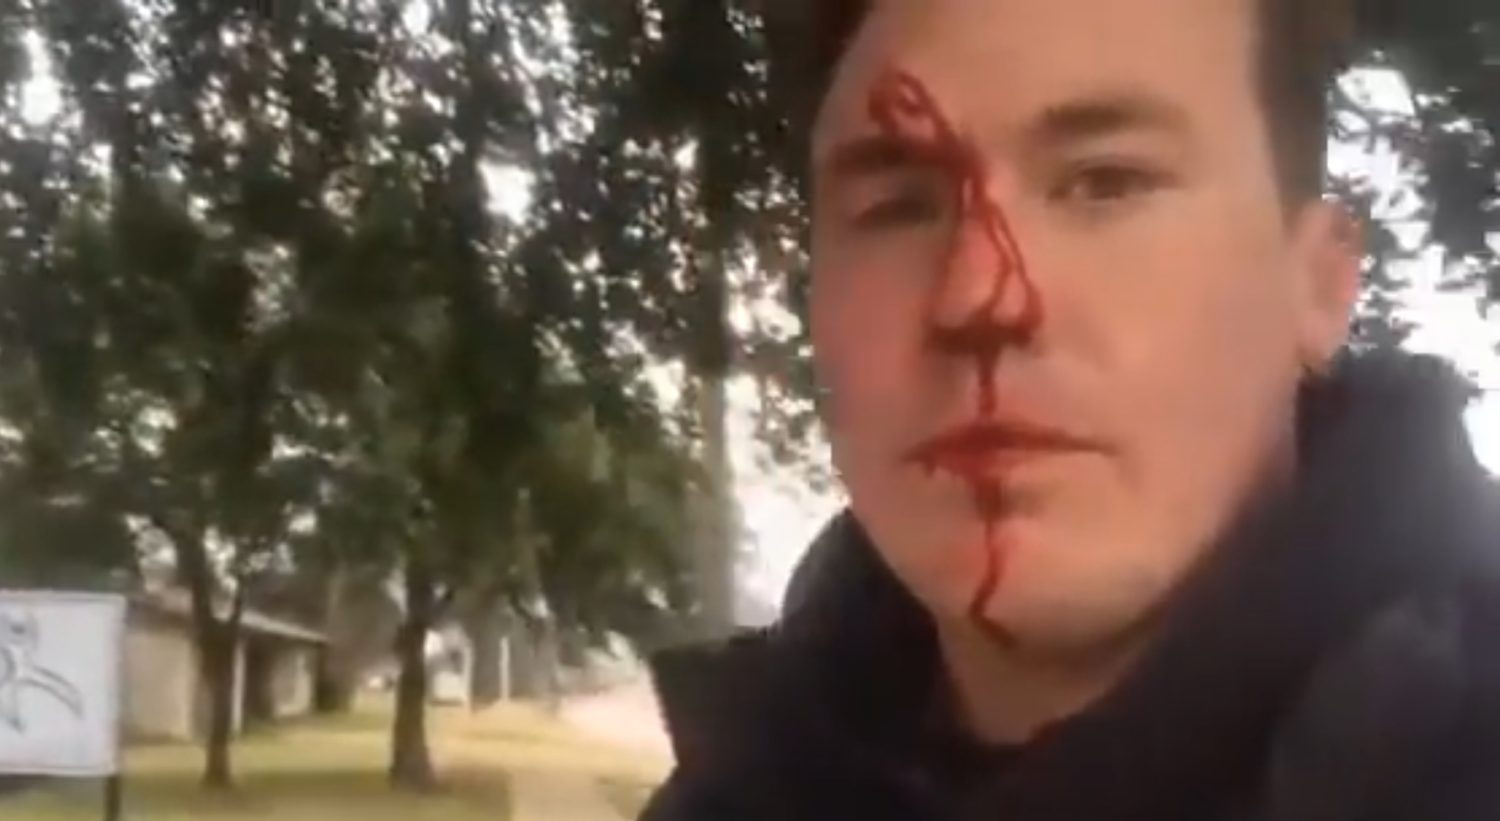 Ryan Roberts was attacked outside a Fort Worth, Tex.on Jan. 11, 2019. YouTube screenshot.